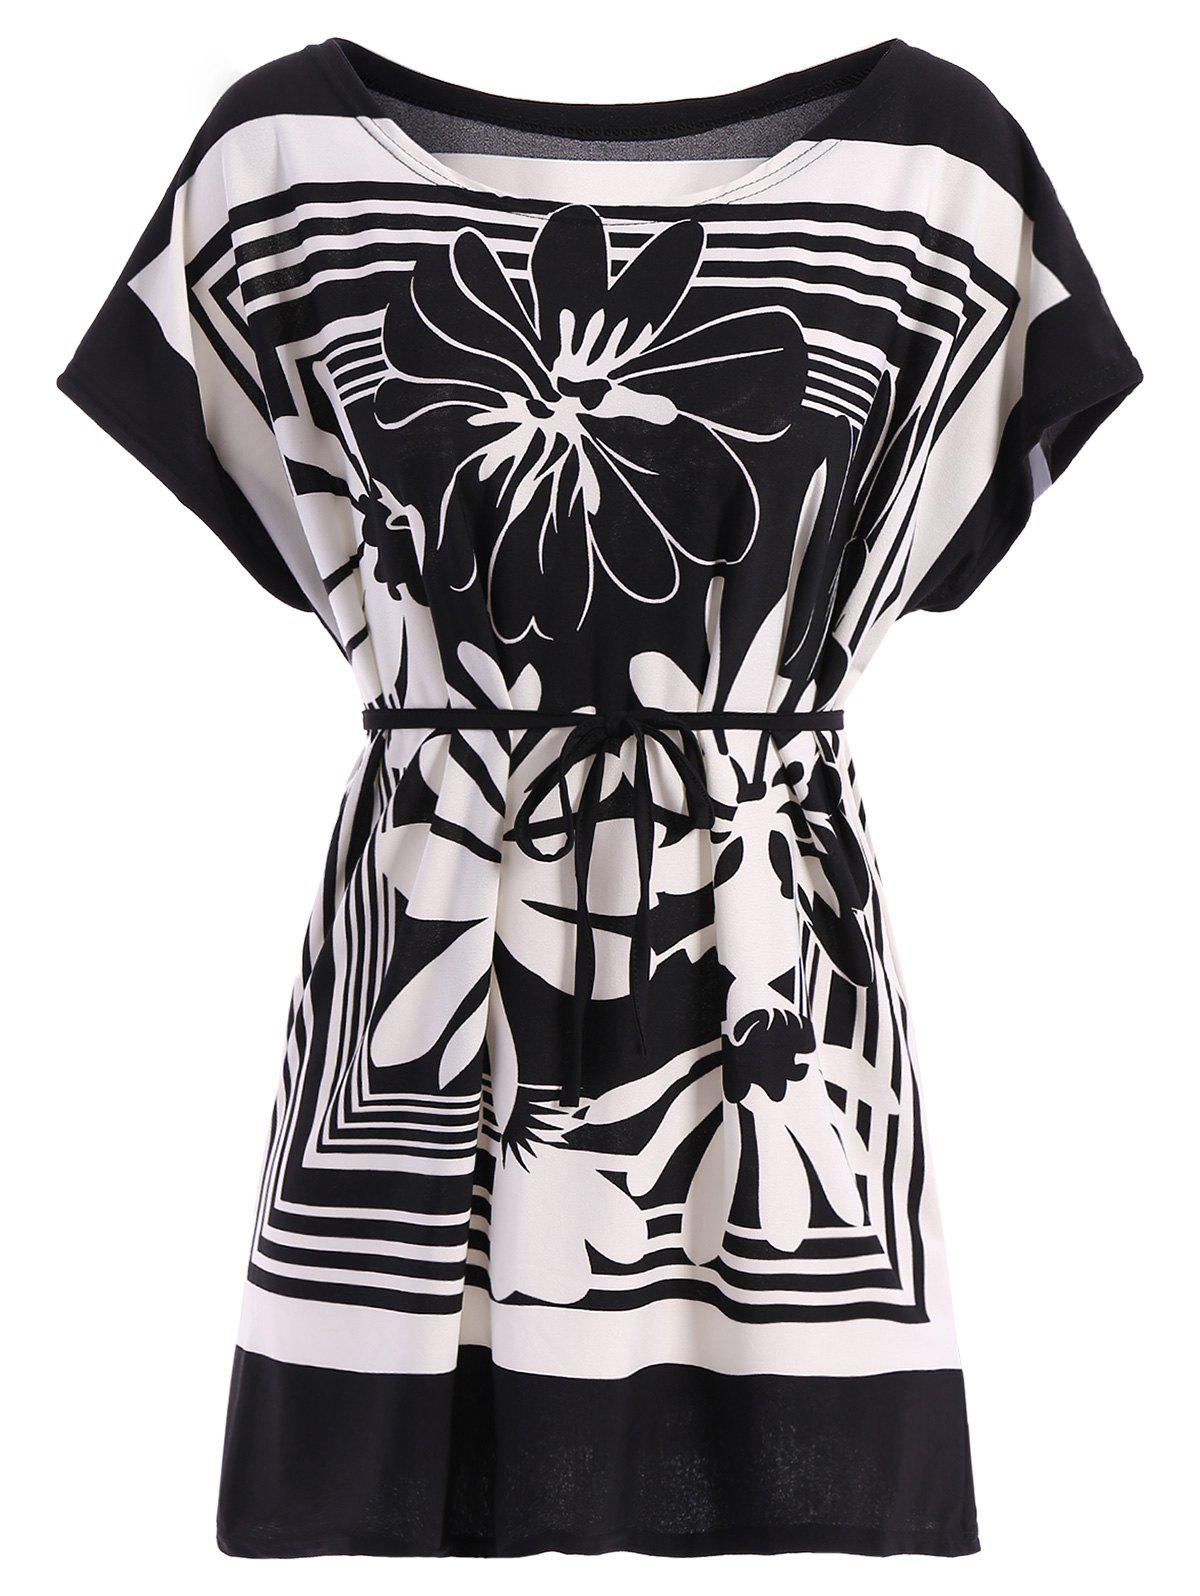 Casual Street Style Floral Printed Loose-Fitting Belted T-Shirt For Women - BLACK ONE SIZE(FIT SIZE XS TO M)